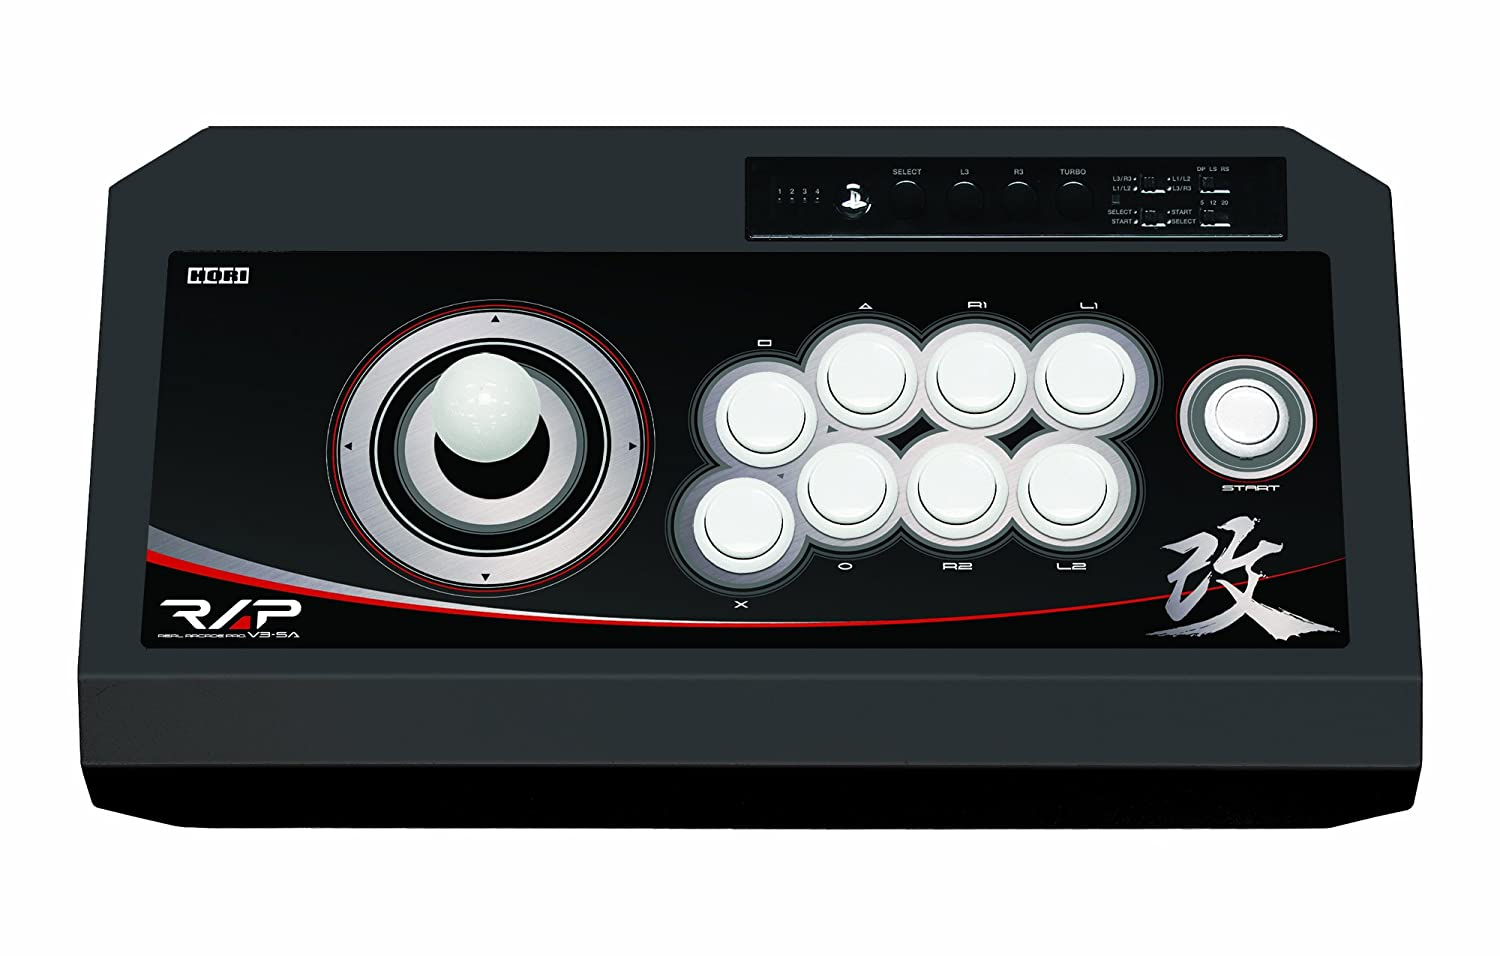 V3 SA Kai, PS3 - Volante/mando (PS3, Especial, Playstation 3, Select, Start, Turbo, Alámbrico, USB 2.0, 3m) Negro: Amazon.es: Videojuegos